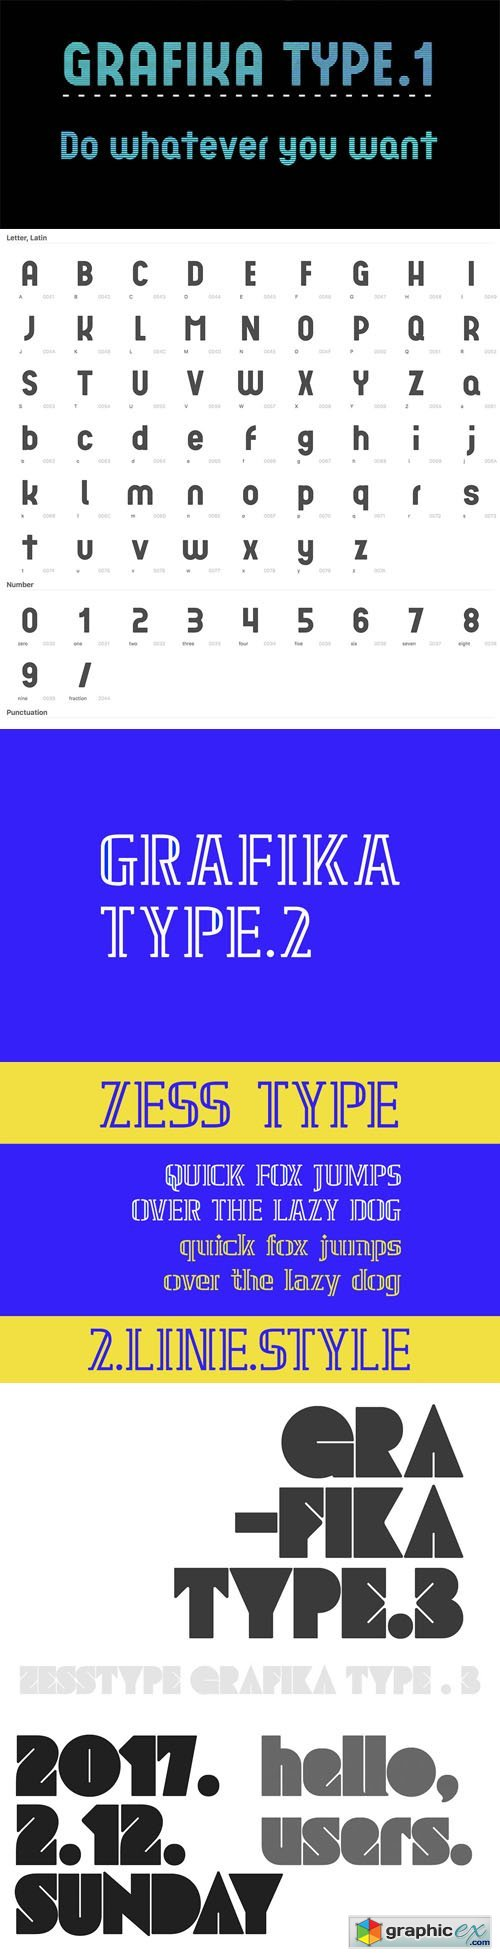 Grafika Sans Serif Fonts [Type 1,2,3]